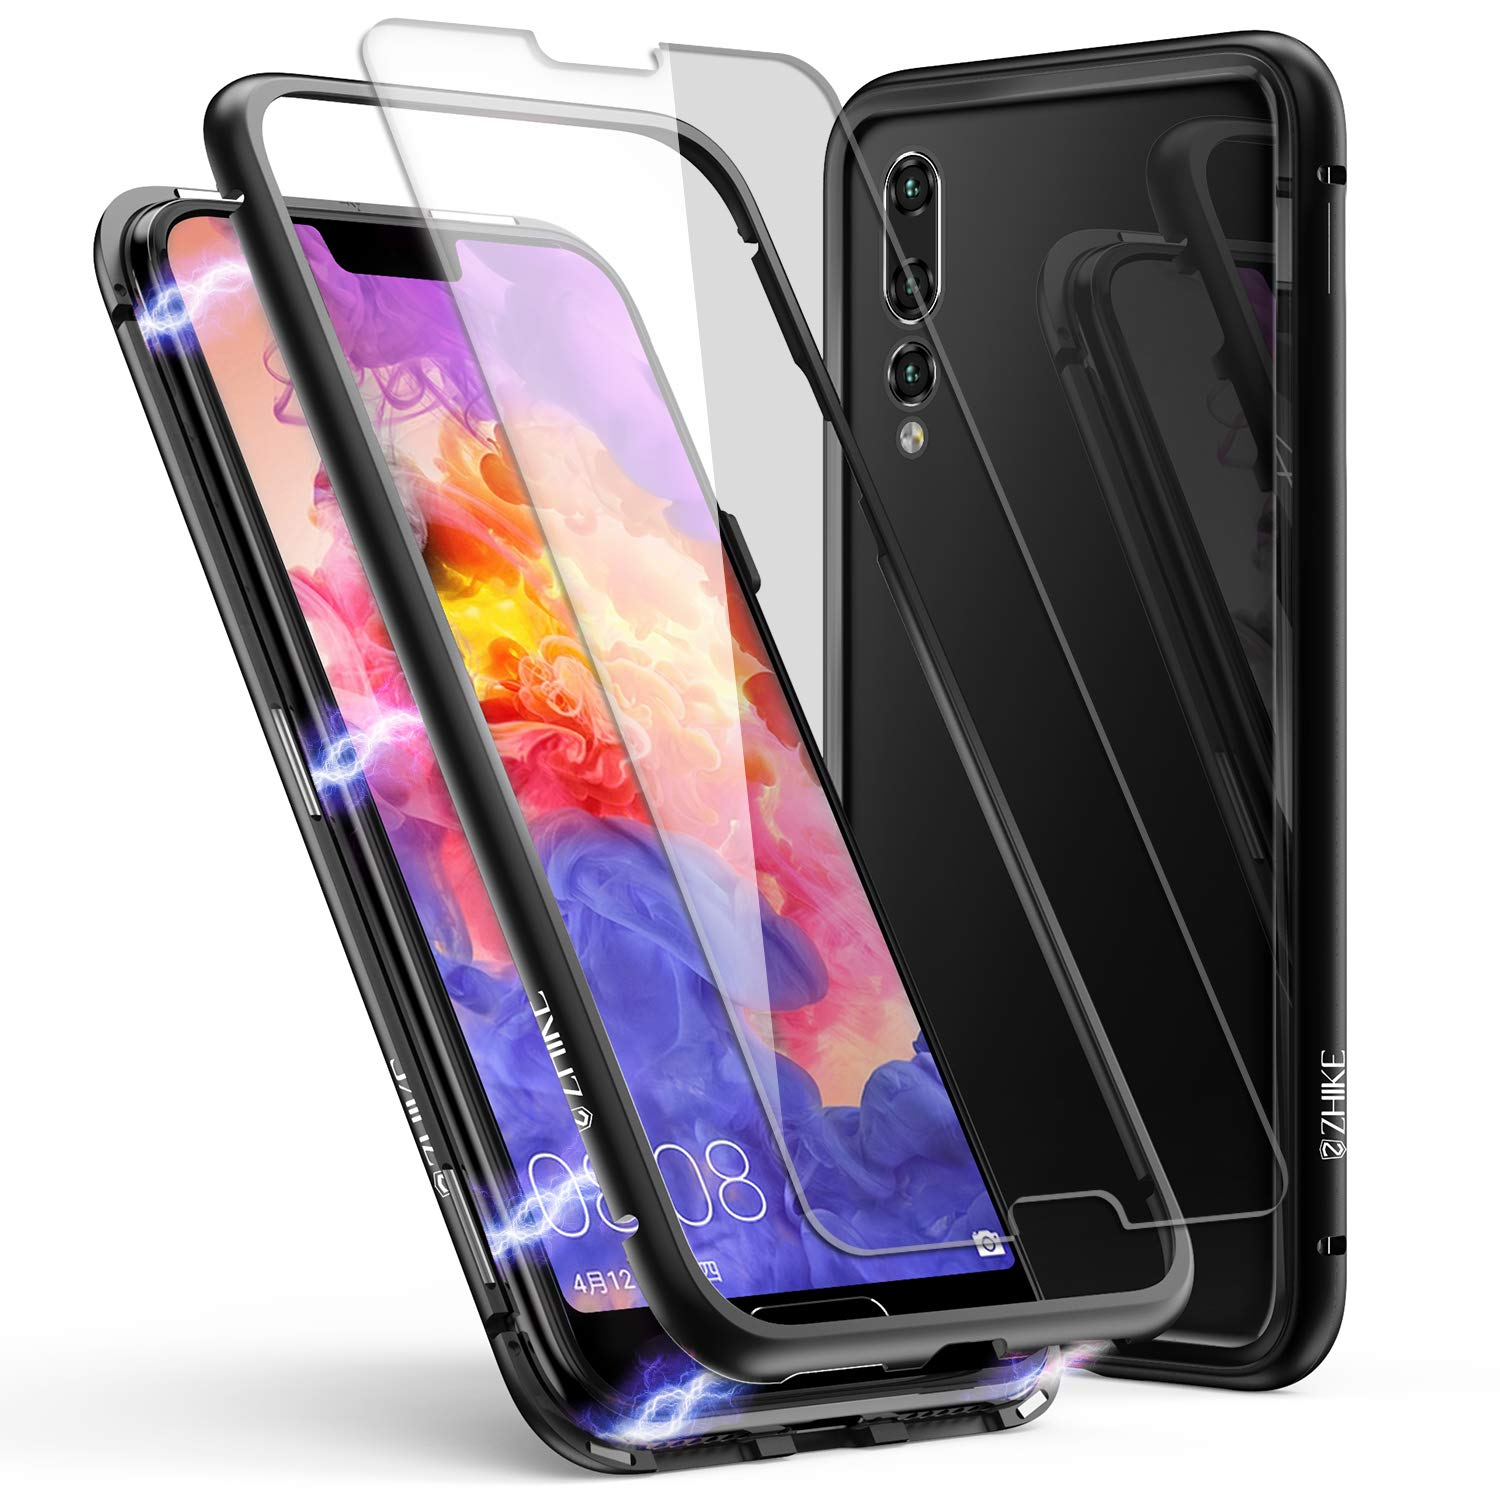 sale retailer e18af 8410f Huawei P20 Pro Case, ZHIKE Magnetic Adsorption Case Metal Frame Tempered  Glass Back with Built-in Magnet Cover for Huawei P20 Pro (Clear Black)